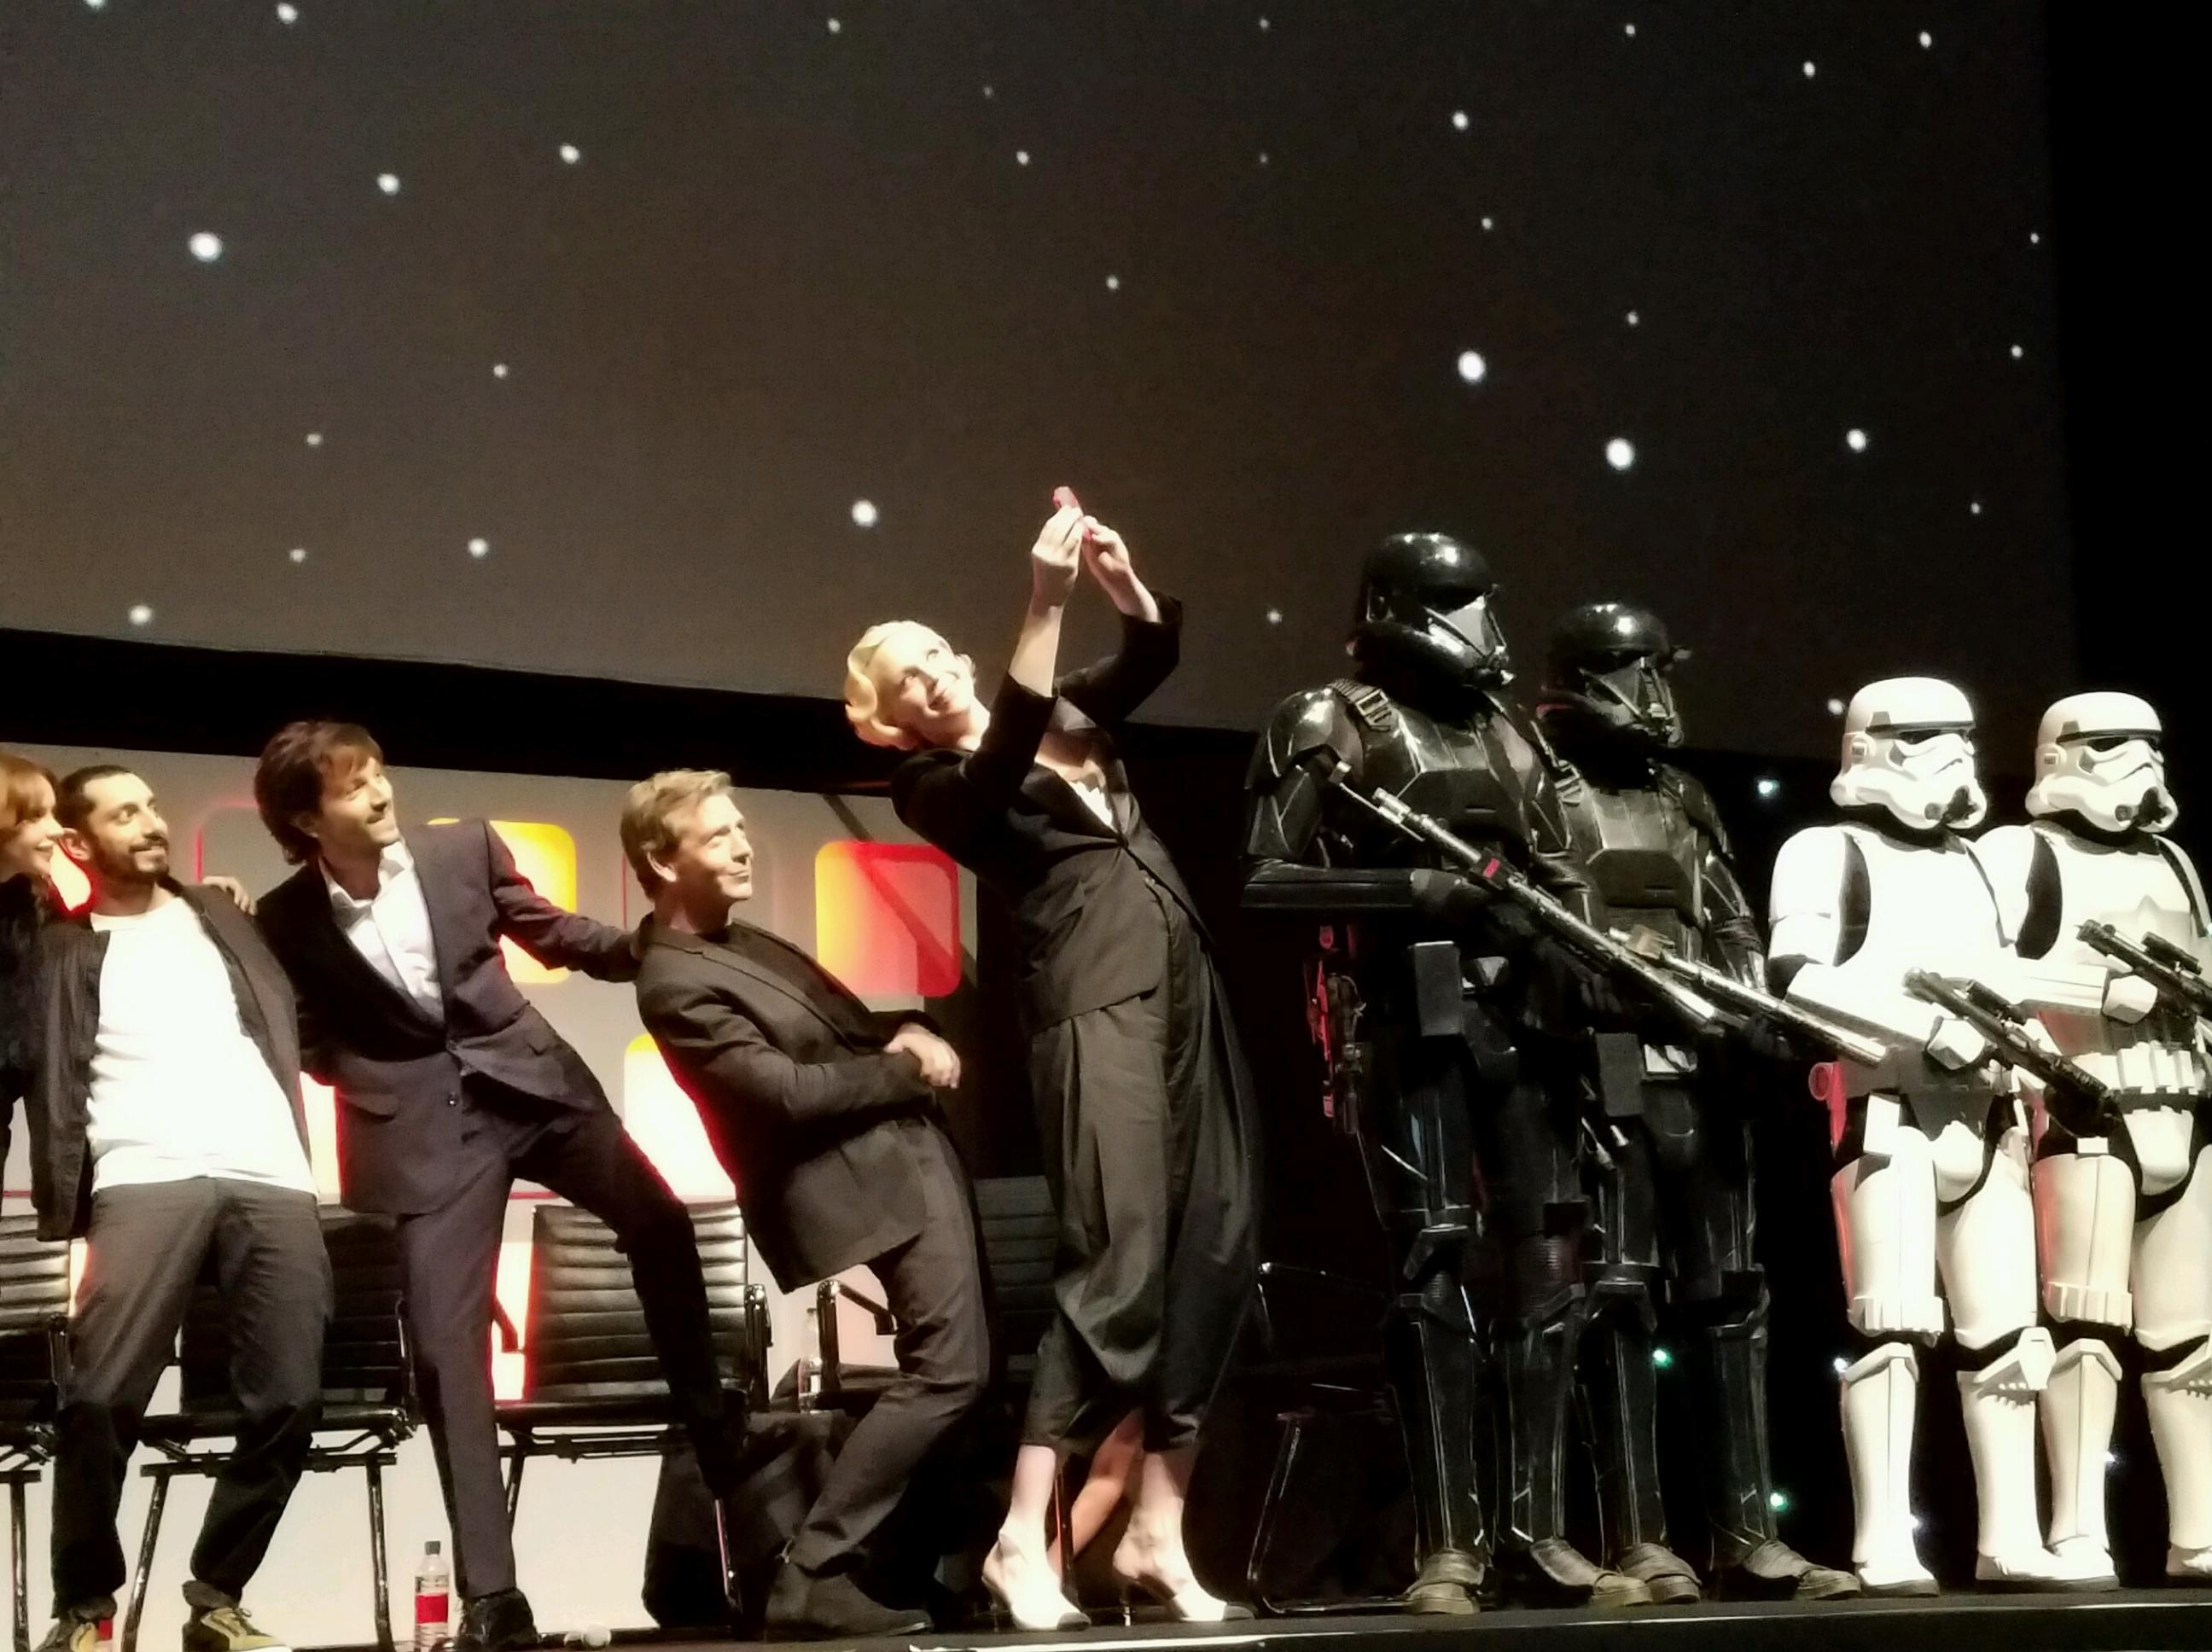 Sensational Suuper Star (Wars) Selfie. (I Love How The Stormtroopers Stay In